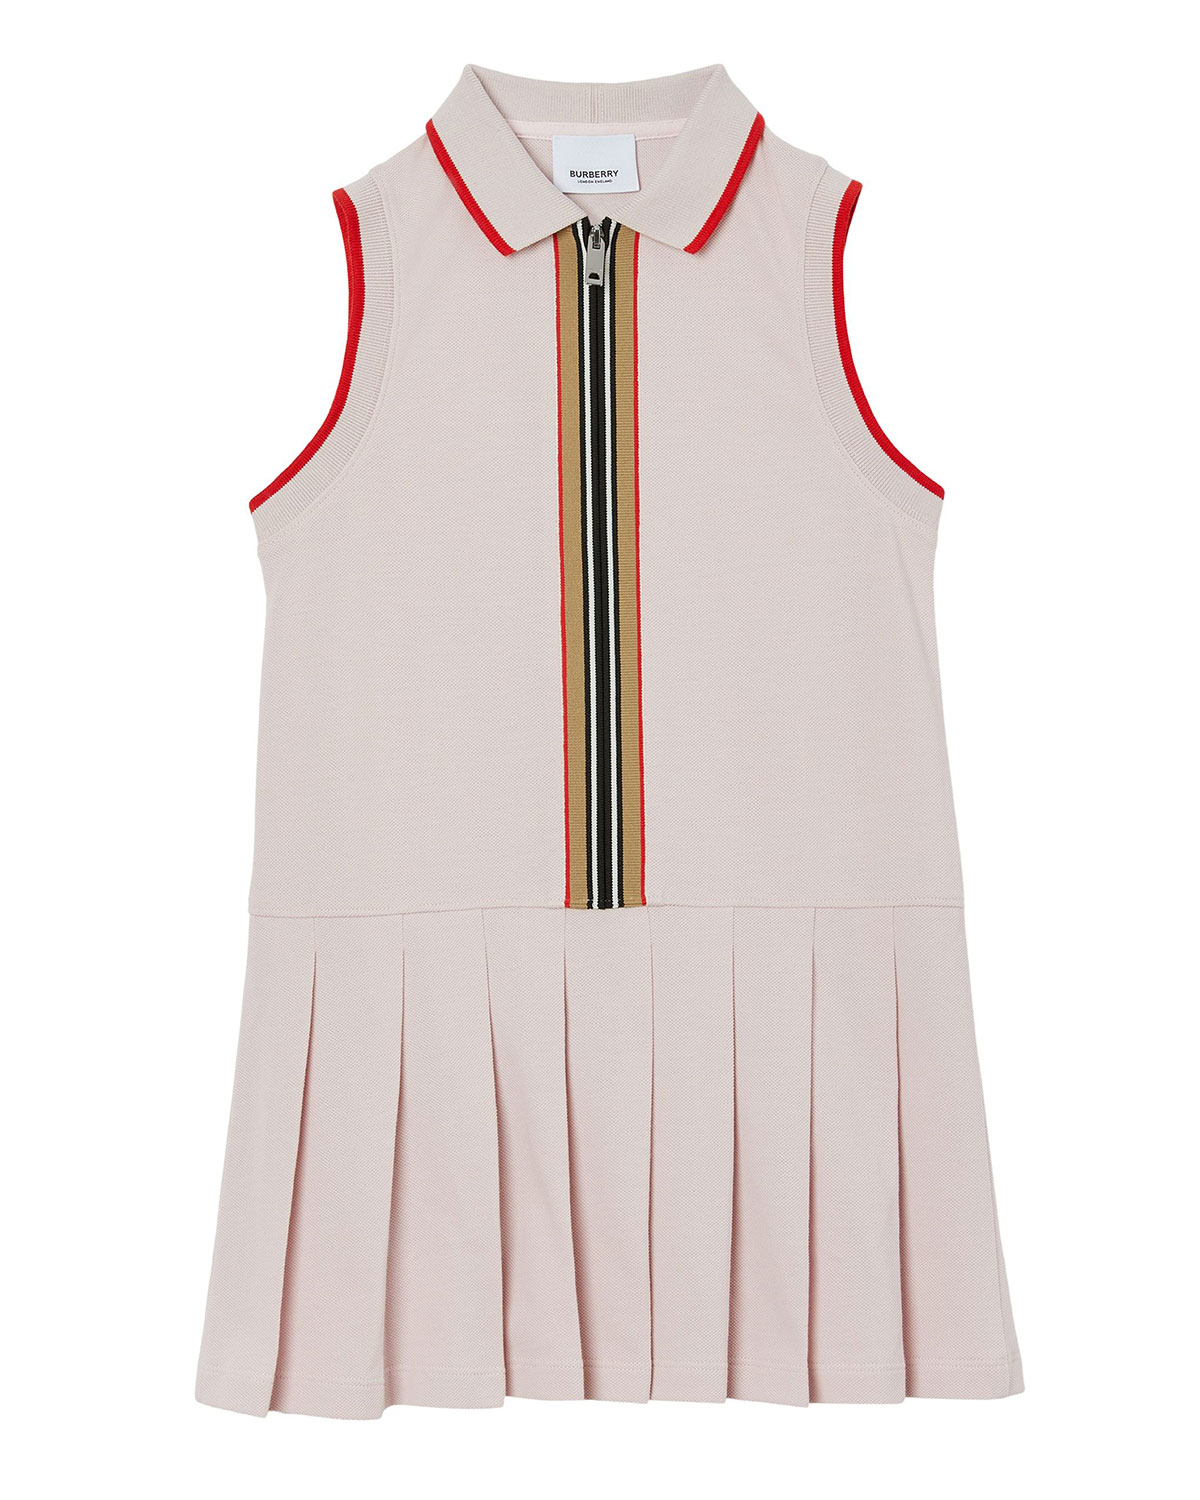 Burberry GIRL'S PLEATED POLO TIPPED DRESS